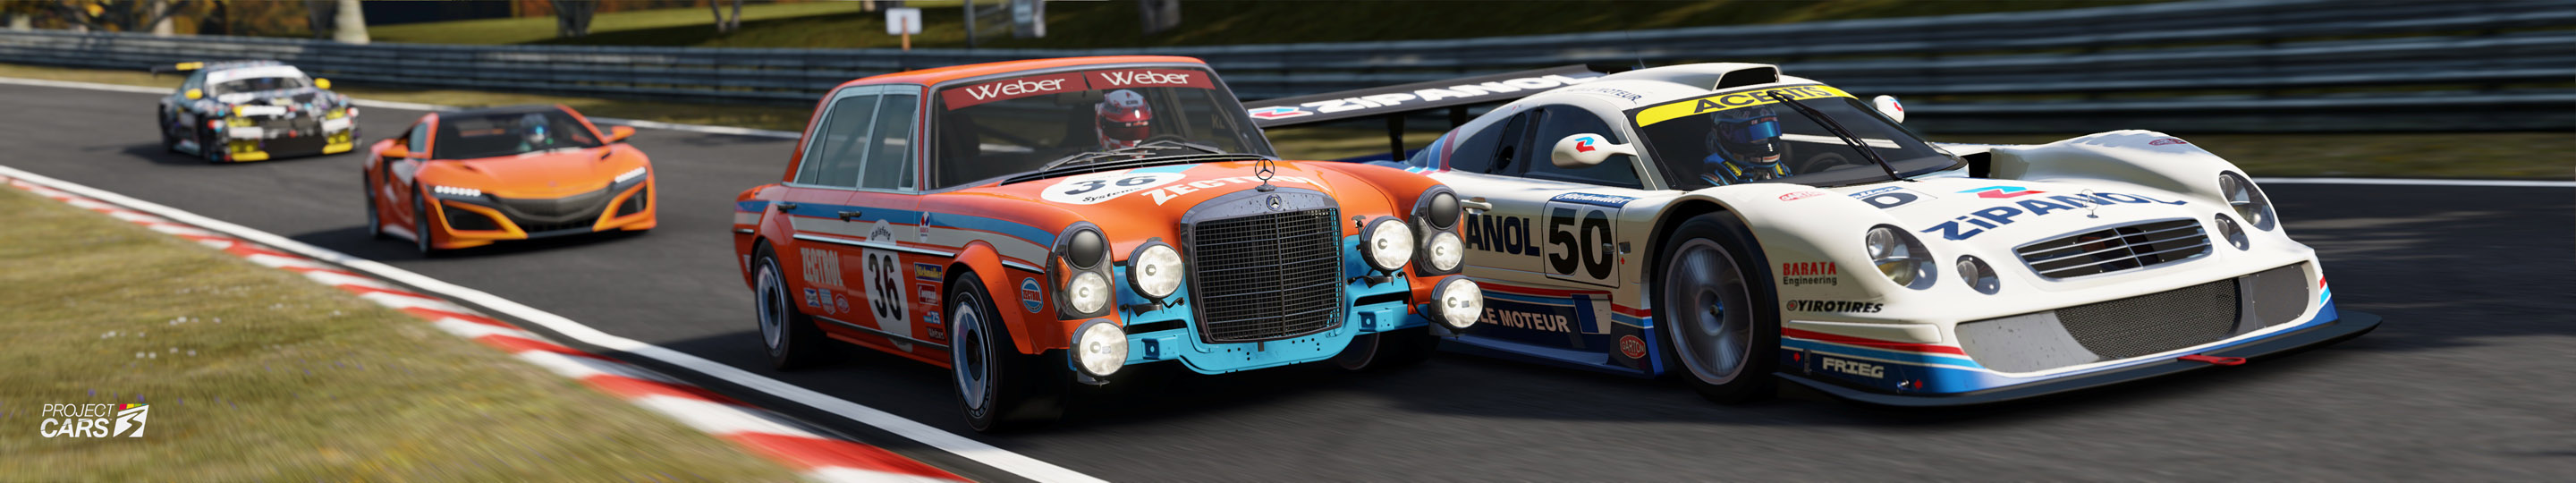 6 PROJECT CARS 3 NORDS Multiclass copy.jpg